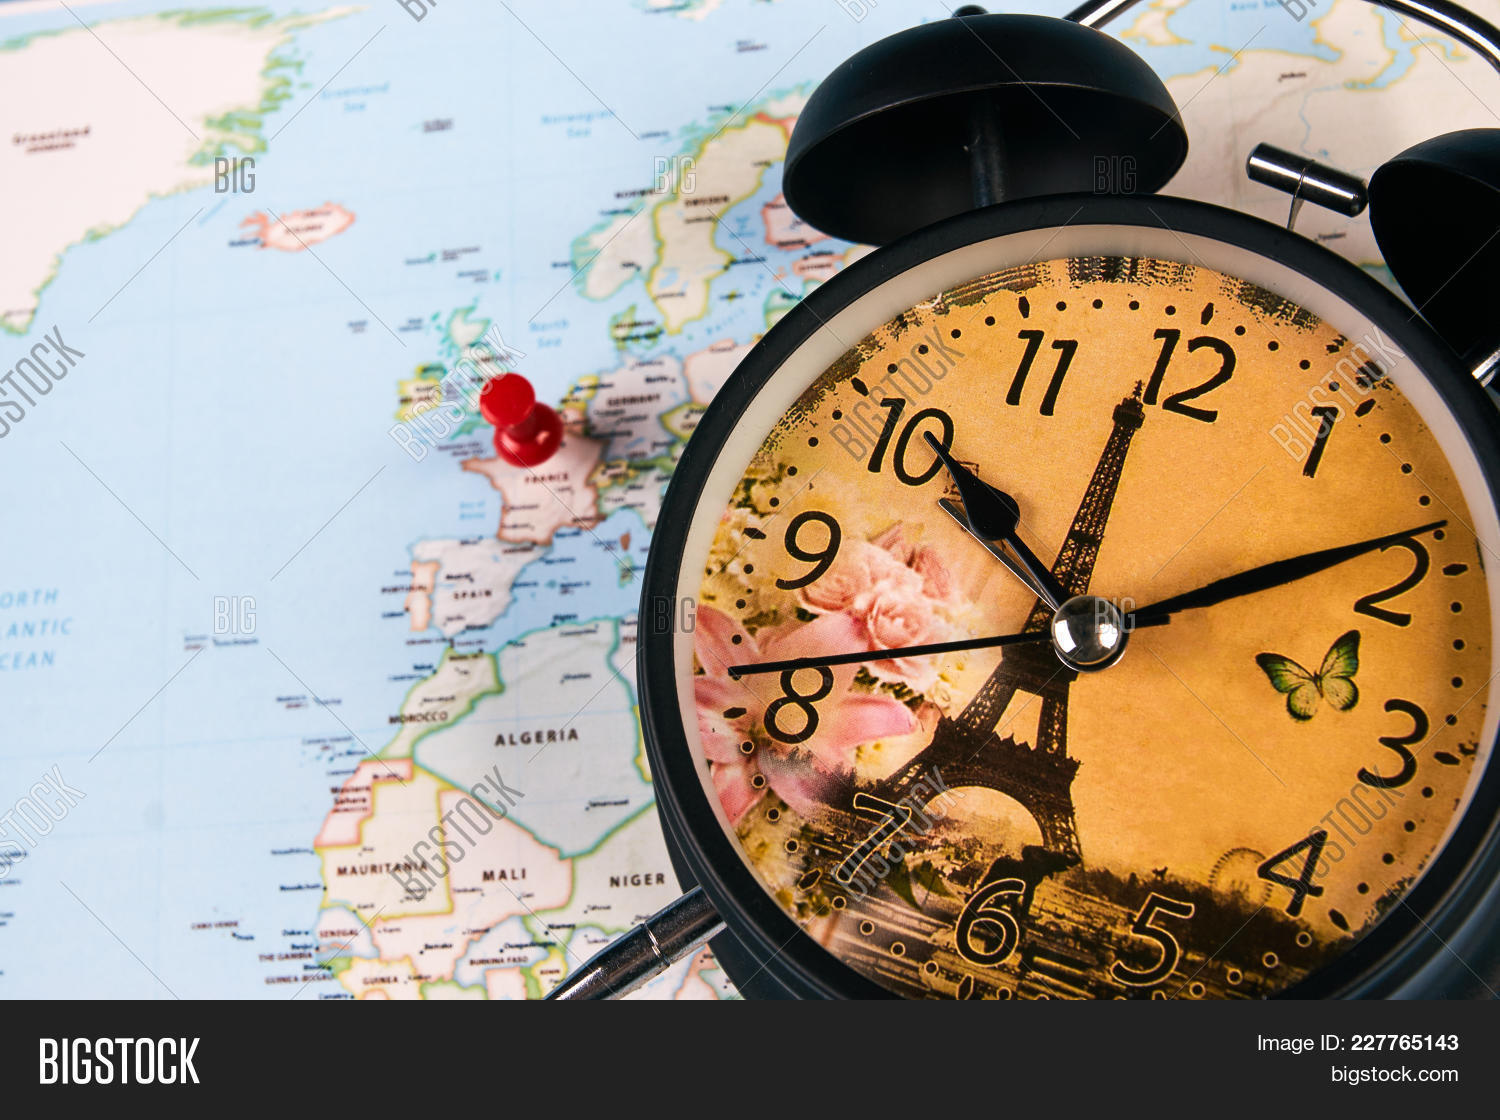 Planing travel france image photo free trial bigstock planing for travel to france paris with worldmap globe and alarm clock travel time in gumiabroncs Images